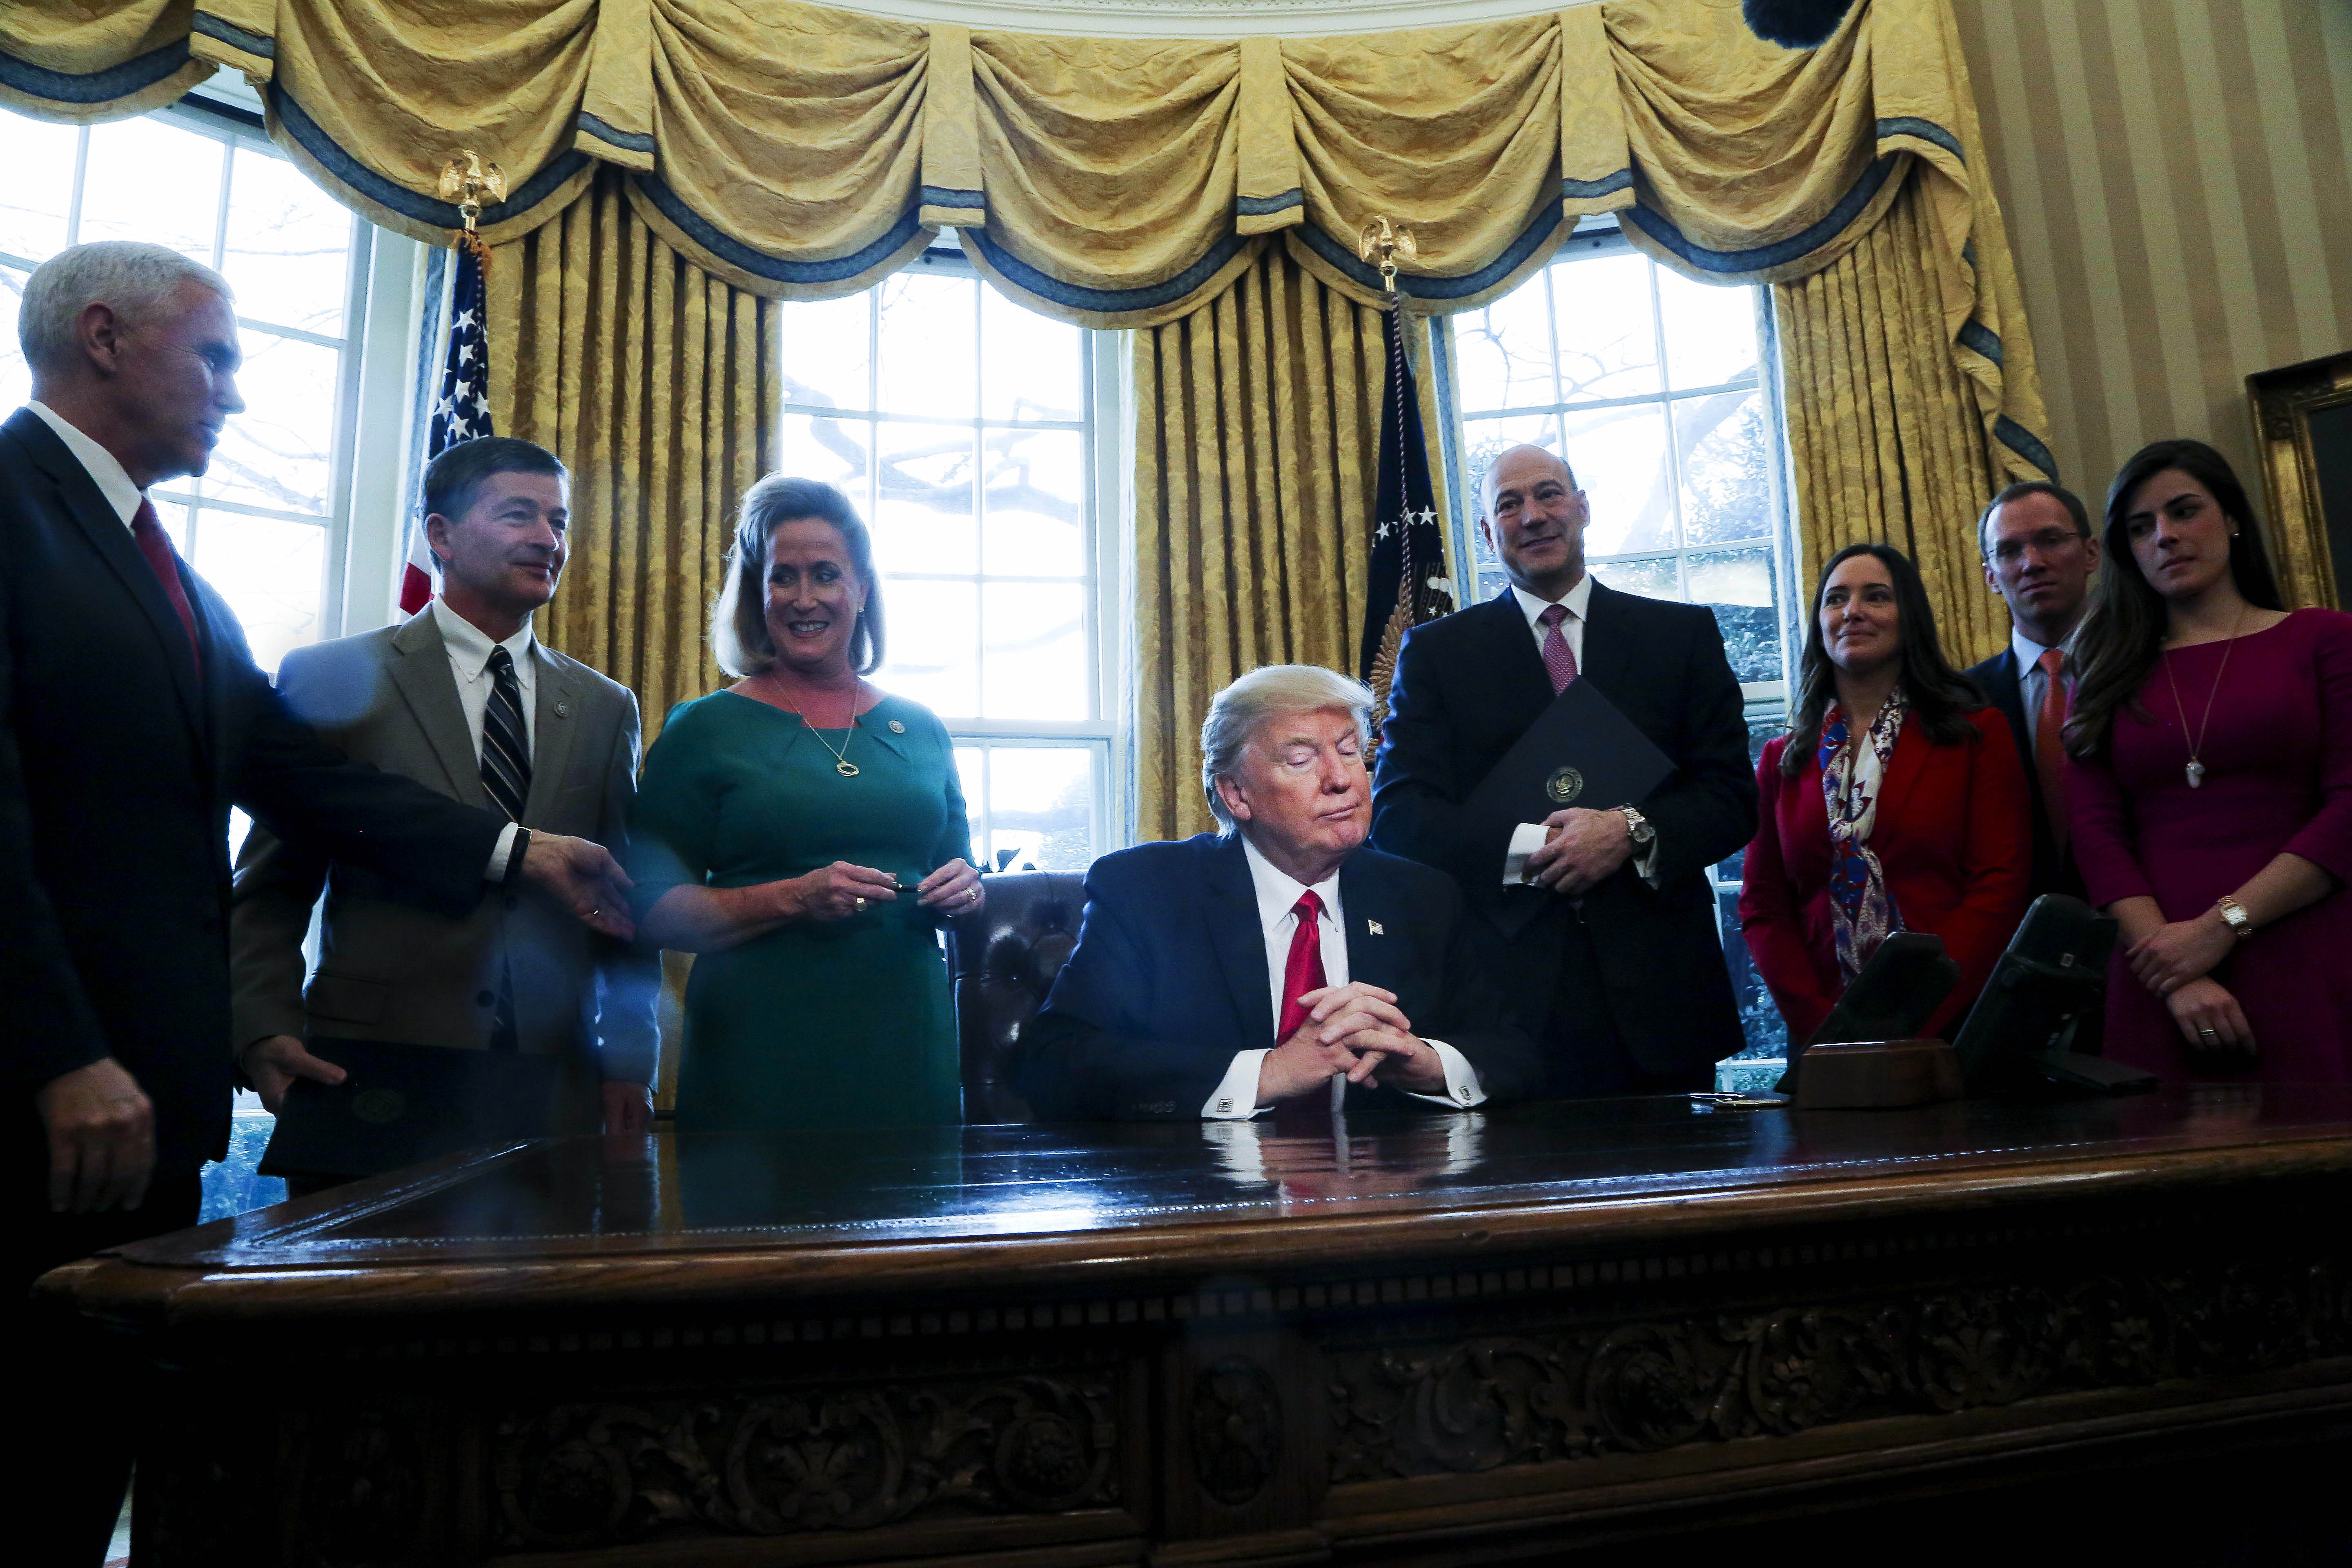 WASHINGTON, DC - FEBRUARY 3: (AFP OUT) U.S. President Donald Trump pauses as he signs Executive Orders in the Oval Office of the White House, including an order to review the Dodd-Frank Wall Street to roll back financial regulations of the Obama era February 3, 2017 in Washington, DC. (Photo by Aude Guerrucci - Pool/Getty Images)